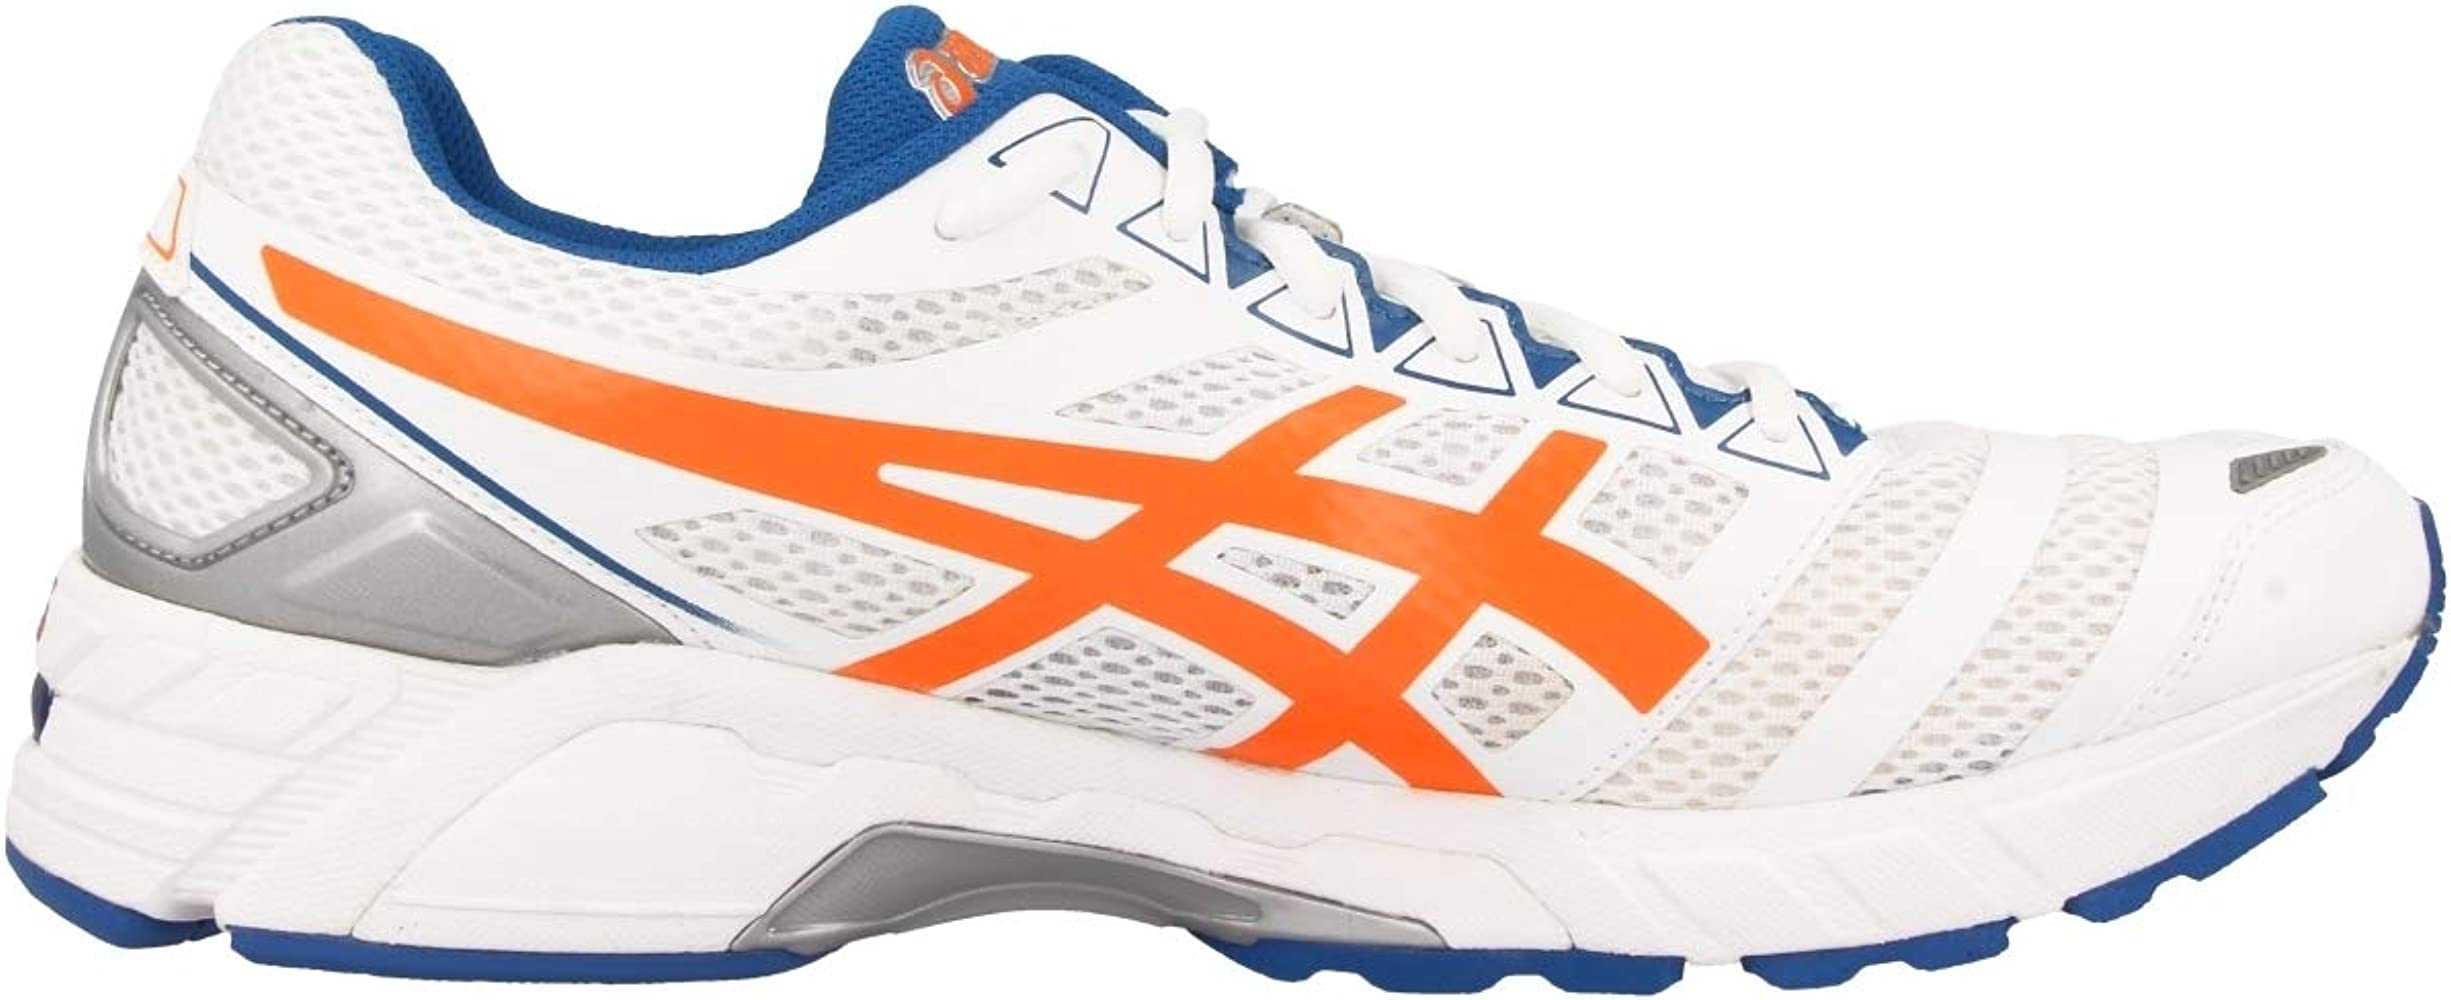 ASICS Gel-DS Trainer 18 Zapatilla de Running Neutra Caballero ...